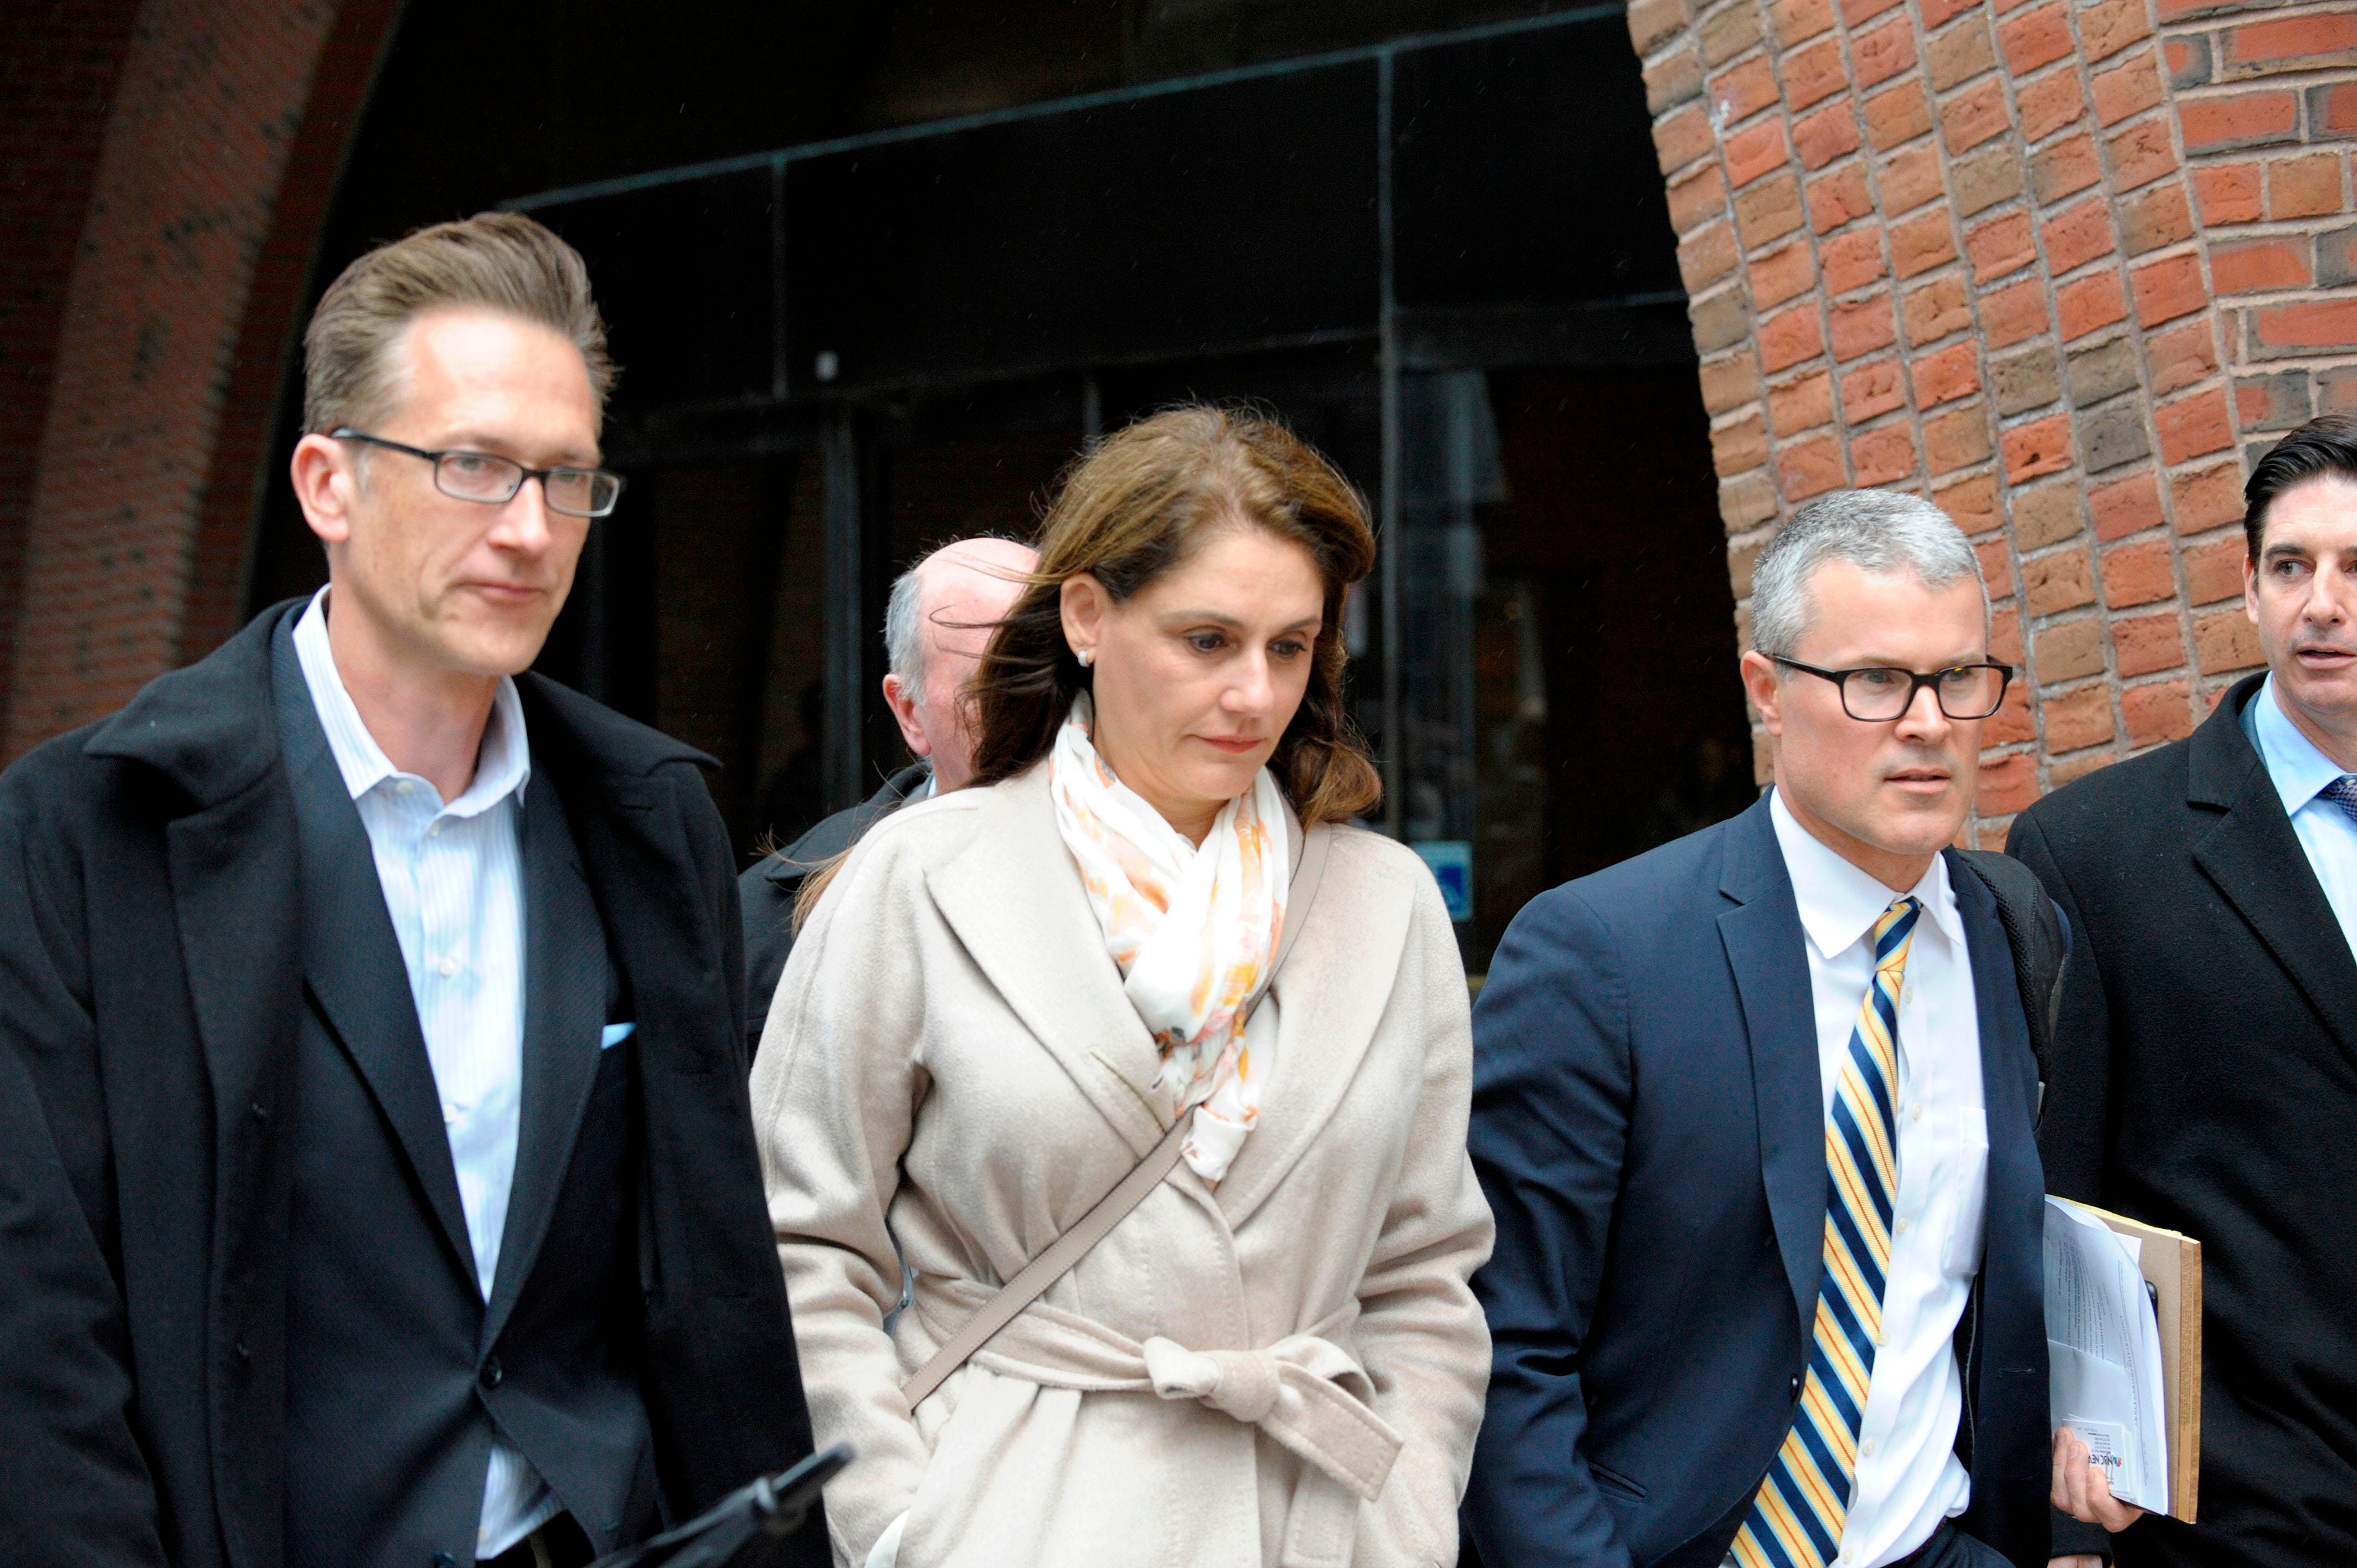 Hot Pockets heiress Michelle Janavs to spend 5 months in prison for trying to buy daughters into elite colleges